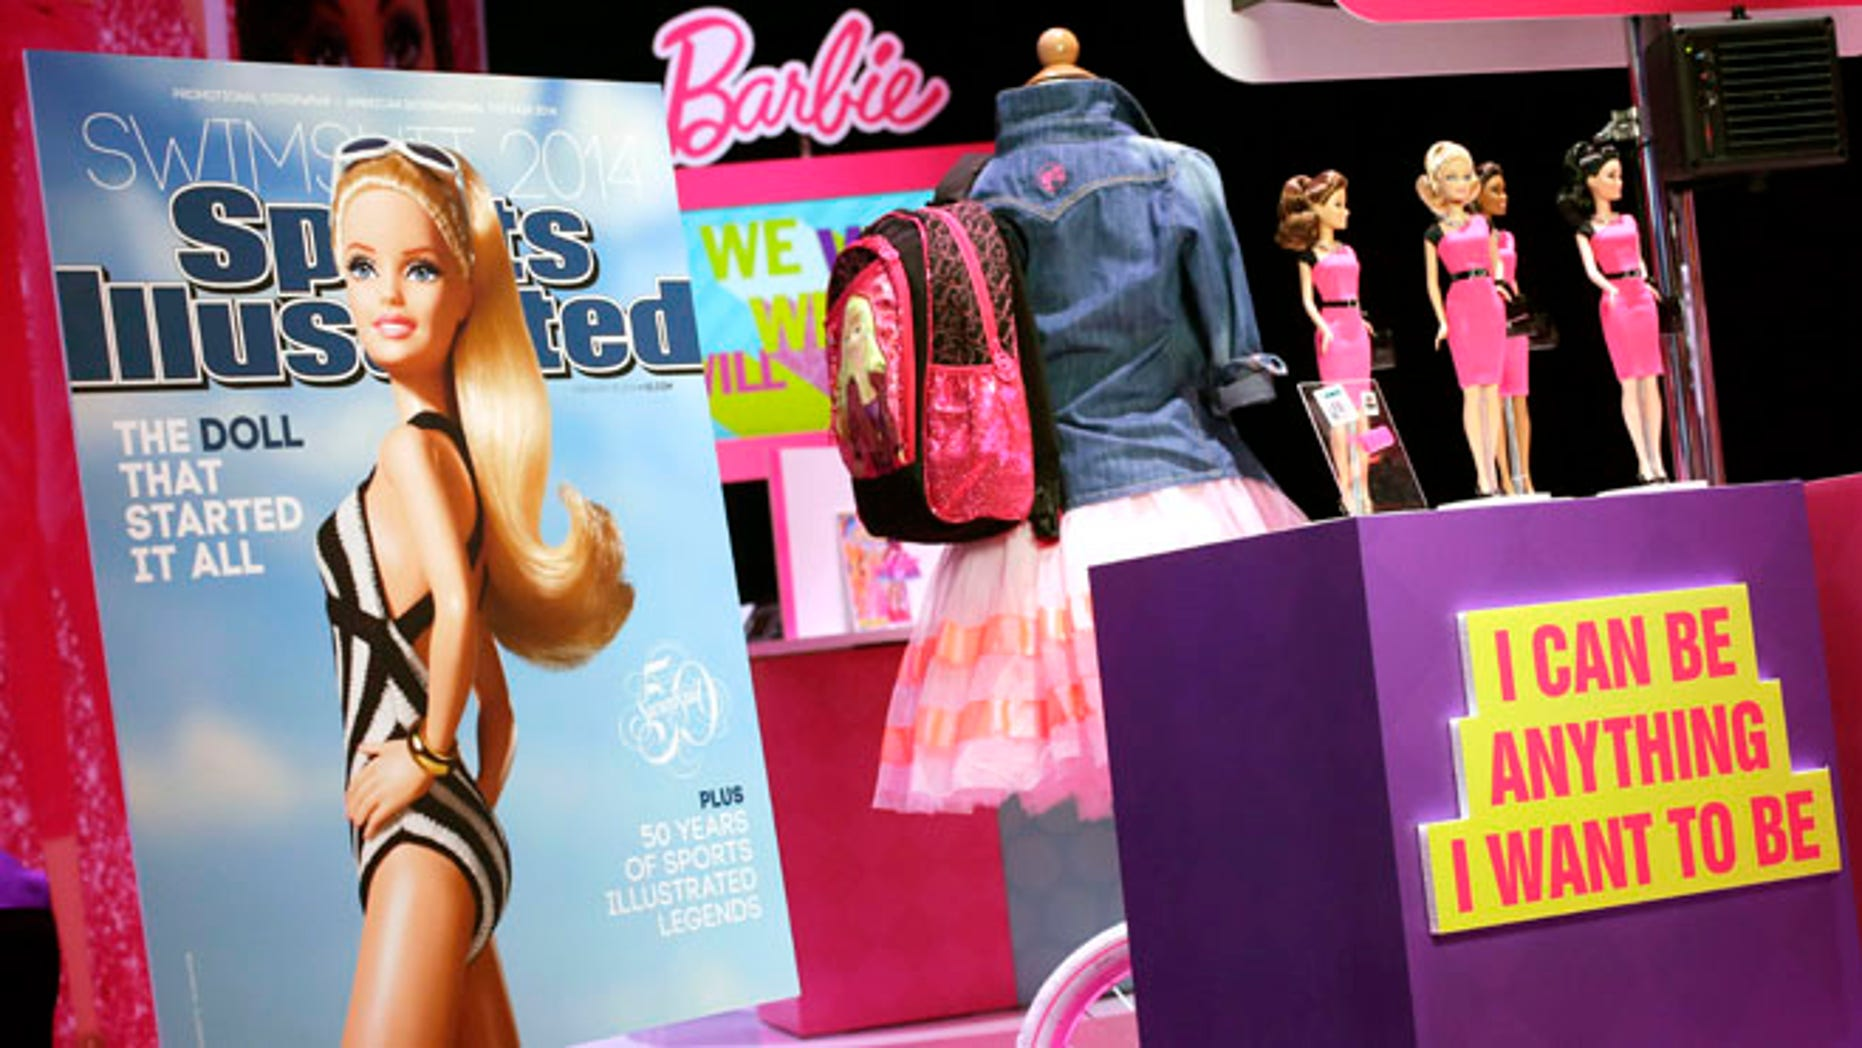 Feb. 14, 2014: In this file photo, a mock-up cover of Barbie on a Sports Illustrated swimsuit issue is displayed at the Mattel booth at the American International Toy Fair in New York.